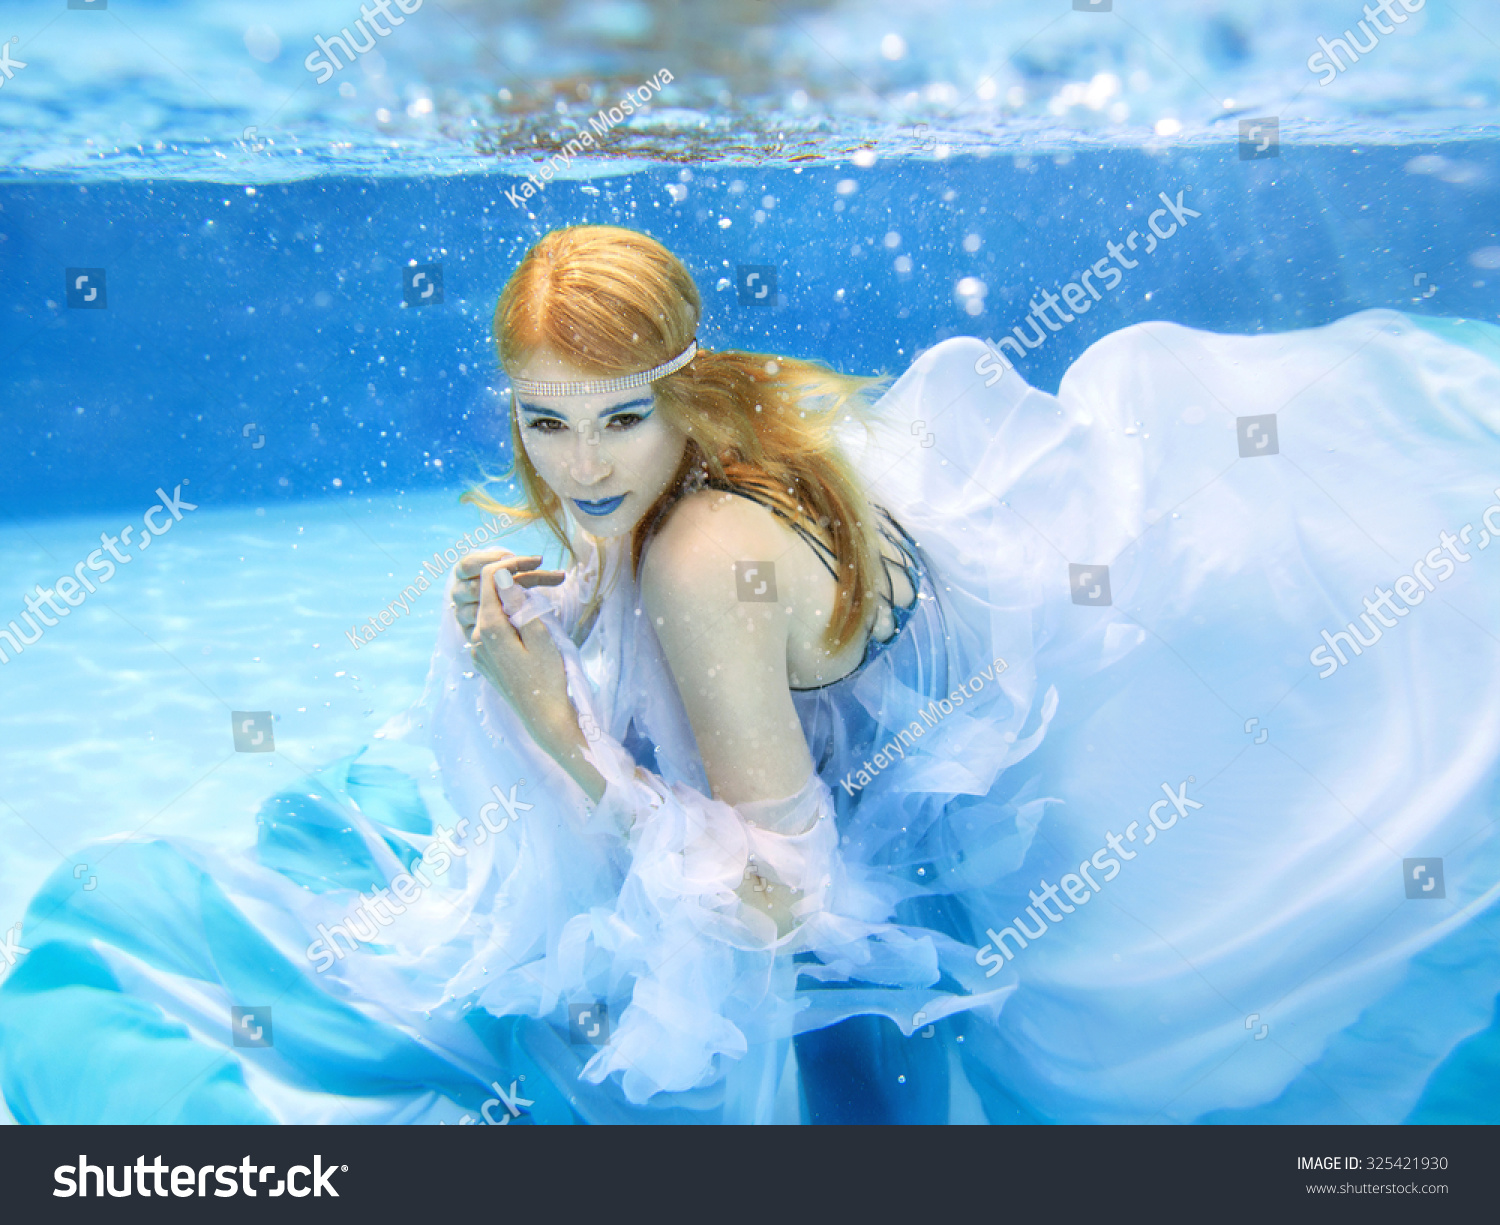 Blonde Young Beautiful Woman As Air Element Underwater In The Swimming Pool